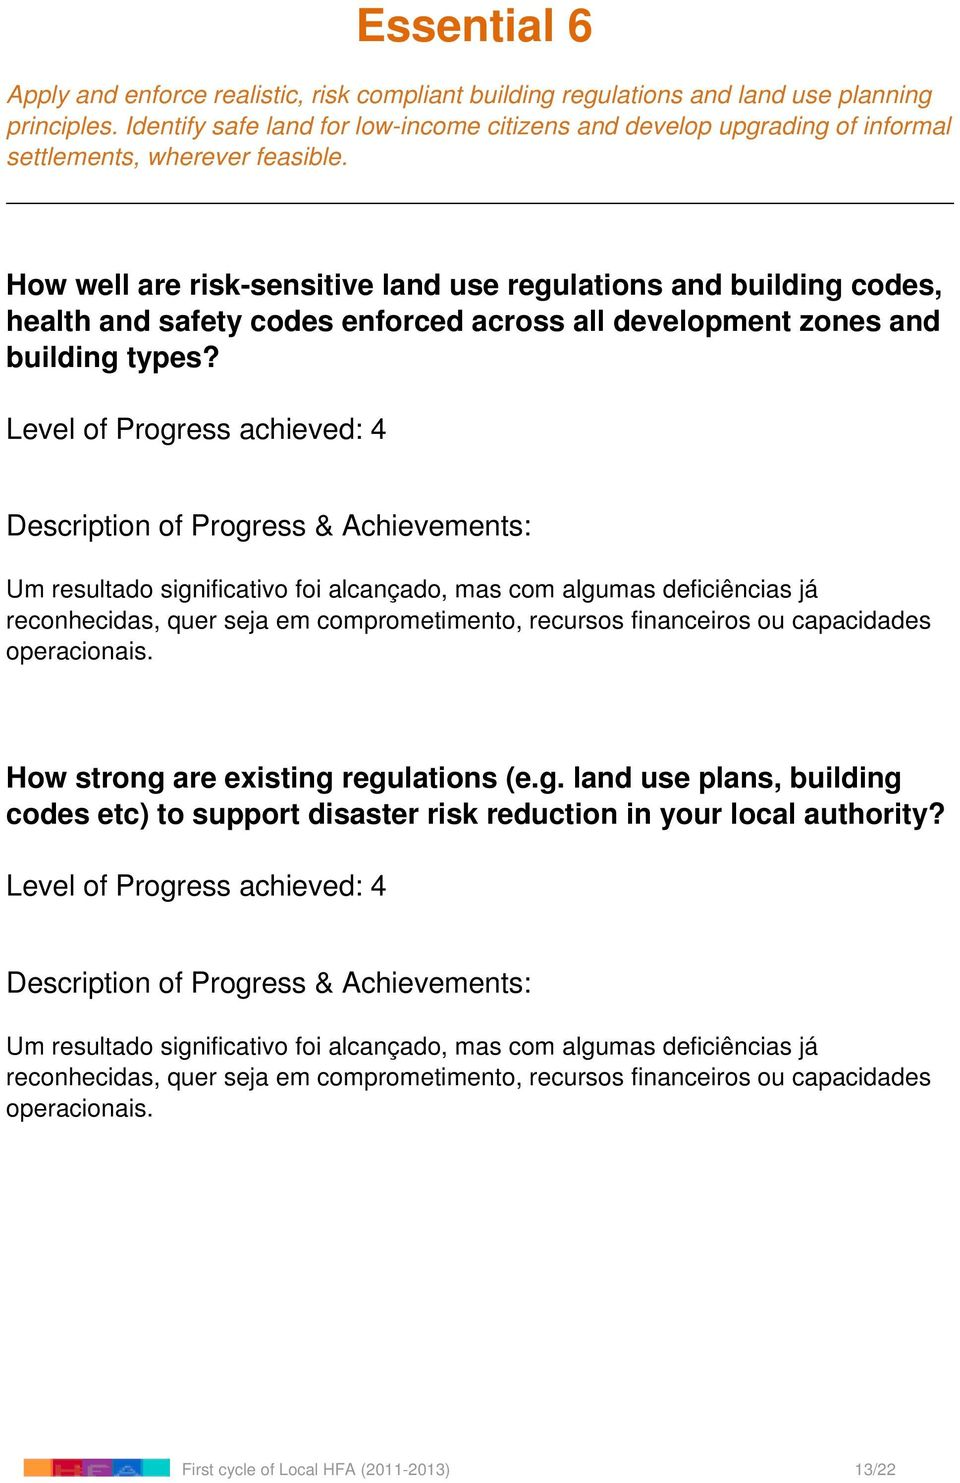 How well are risk-sensitive land use regulations and building codes, health and safety codes enforced across all development zones and